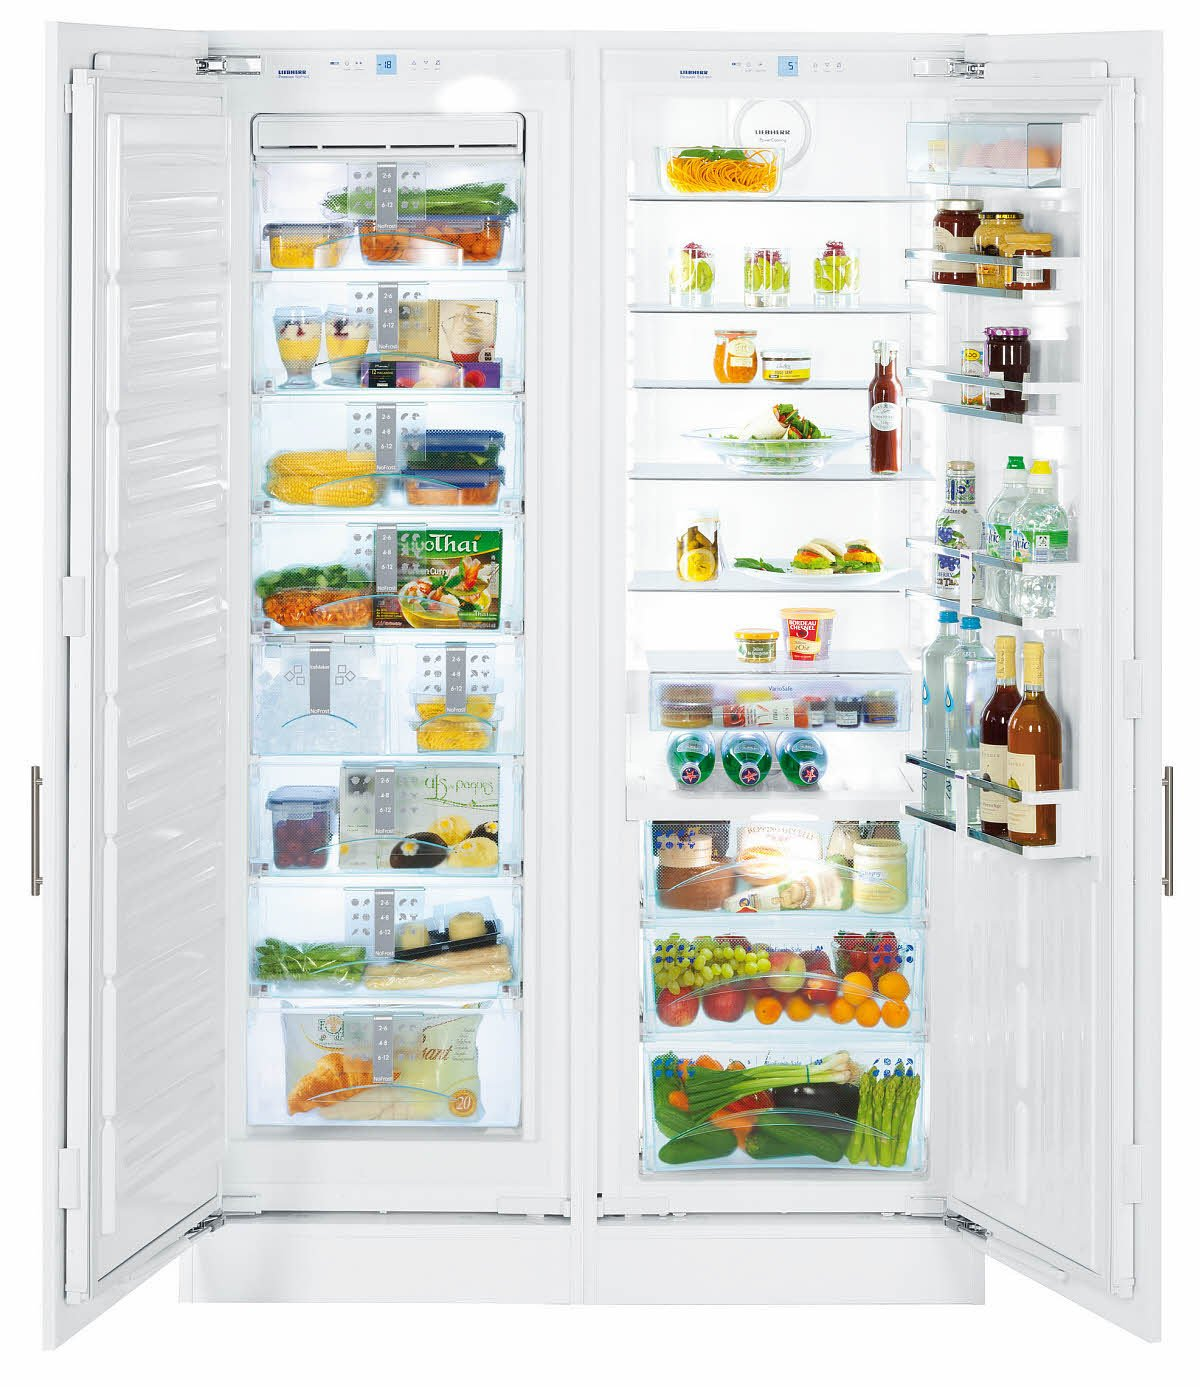 Liebherr SBS 70i4  Integrated 518L A + + White Side-by-Side Refrigerator  –   Fridge Side-by-Side (Built-in, White, American Door, LED, Touch, LCD)